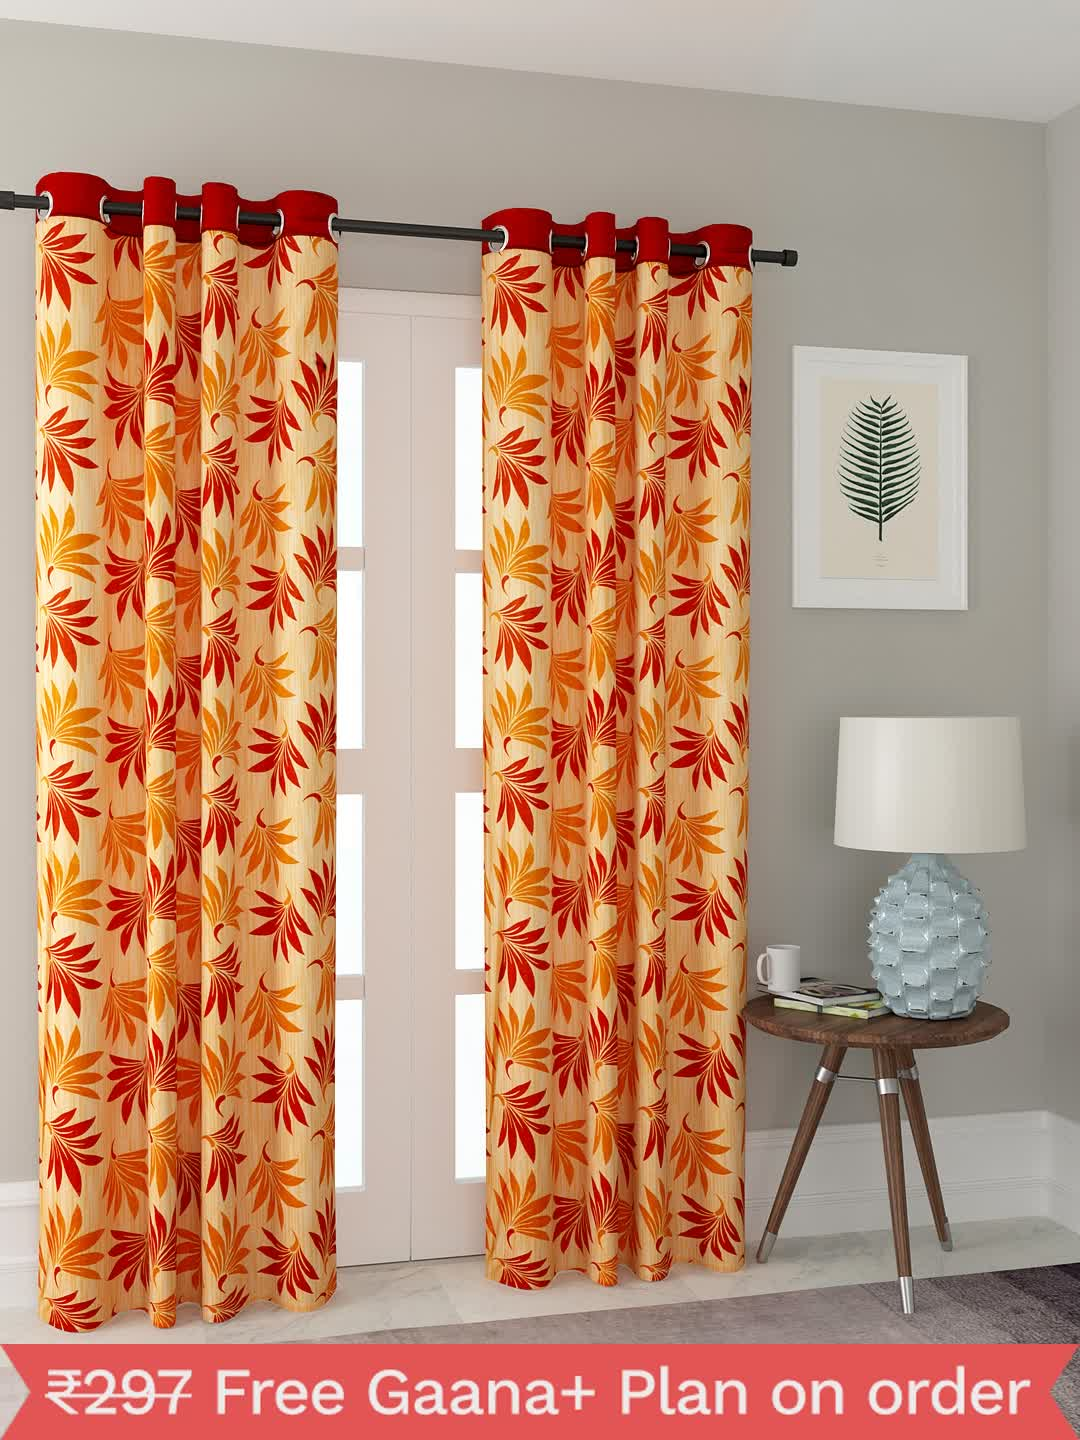 Polyester Printed Window Curtains for Bedroom, Kitchen, Kids or Living Room-023_Set of 2 - 1, Medium